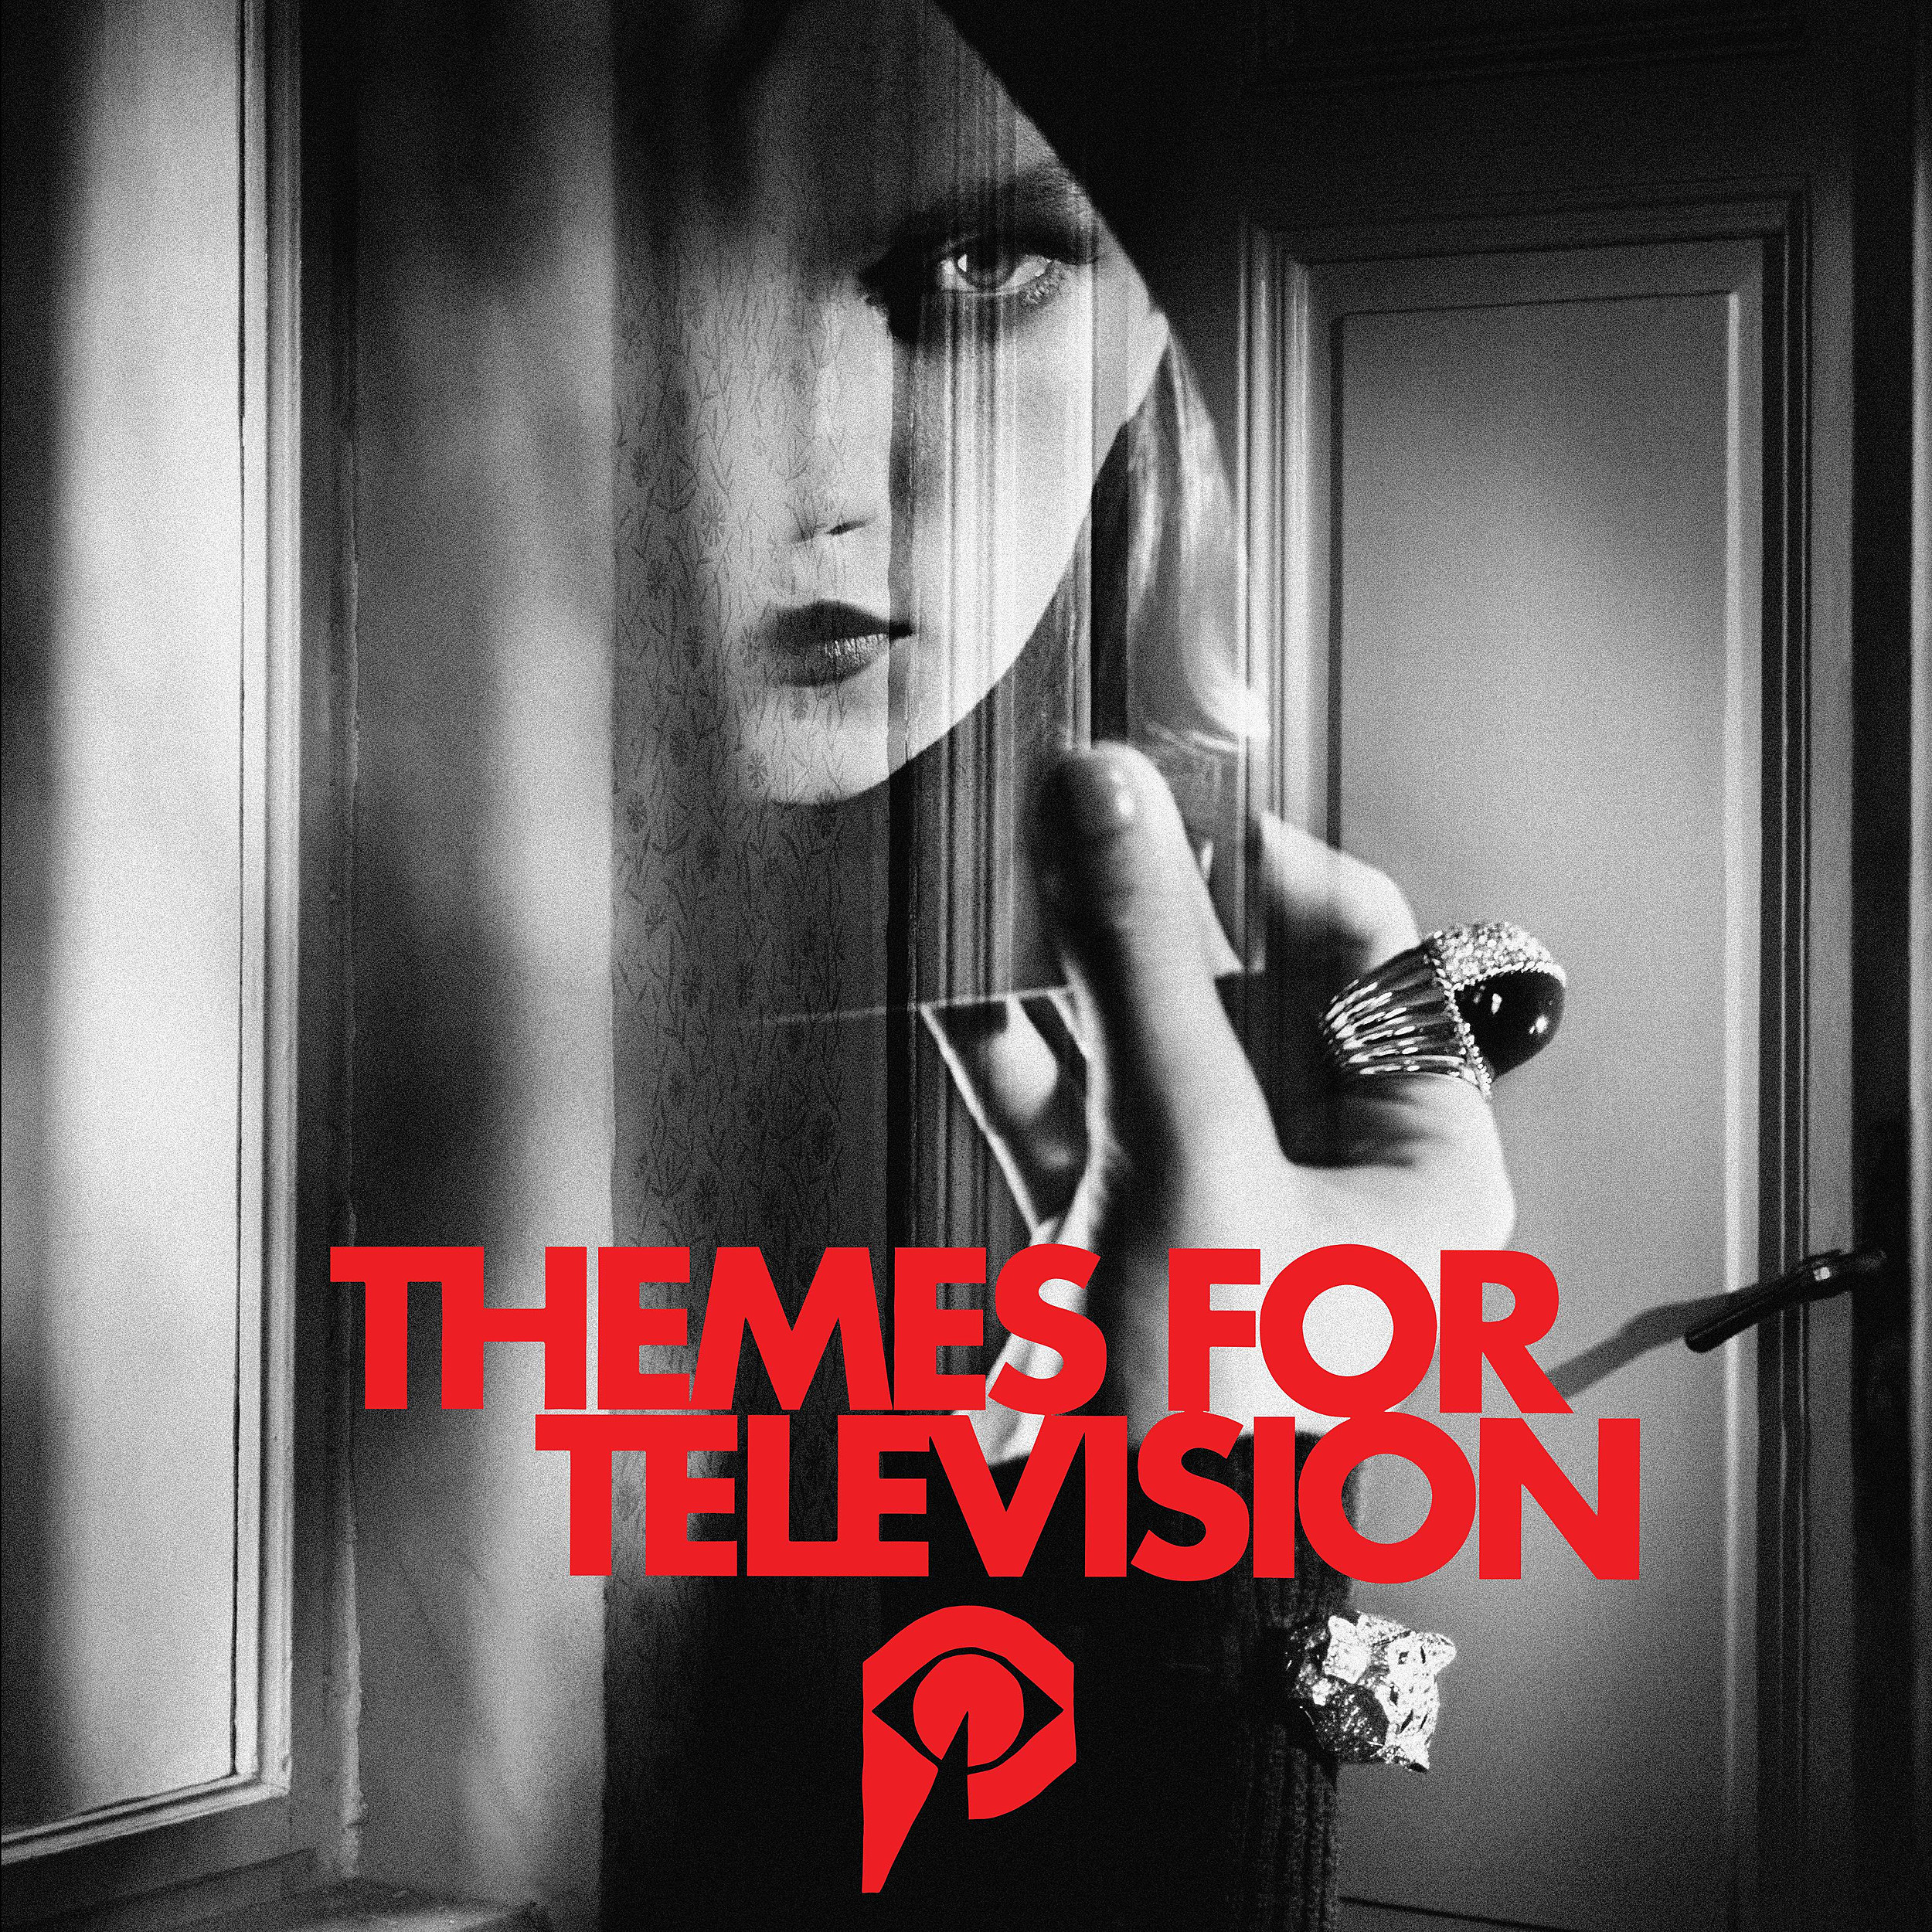 themes-for-television